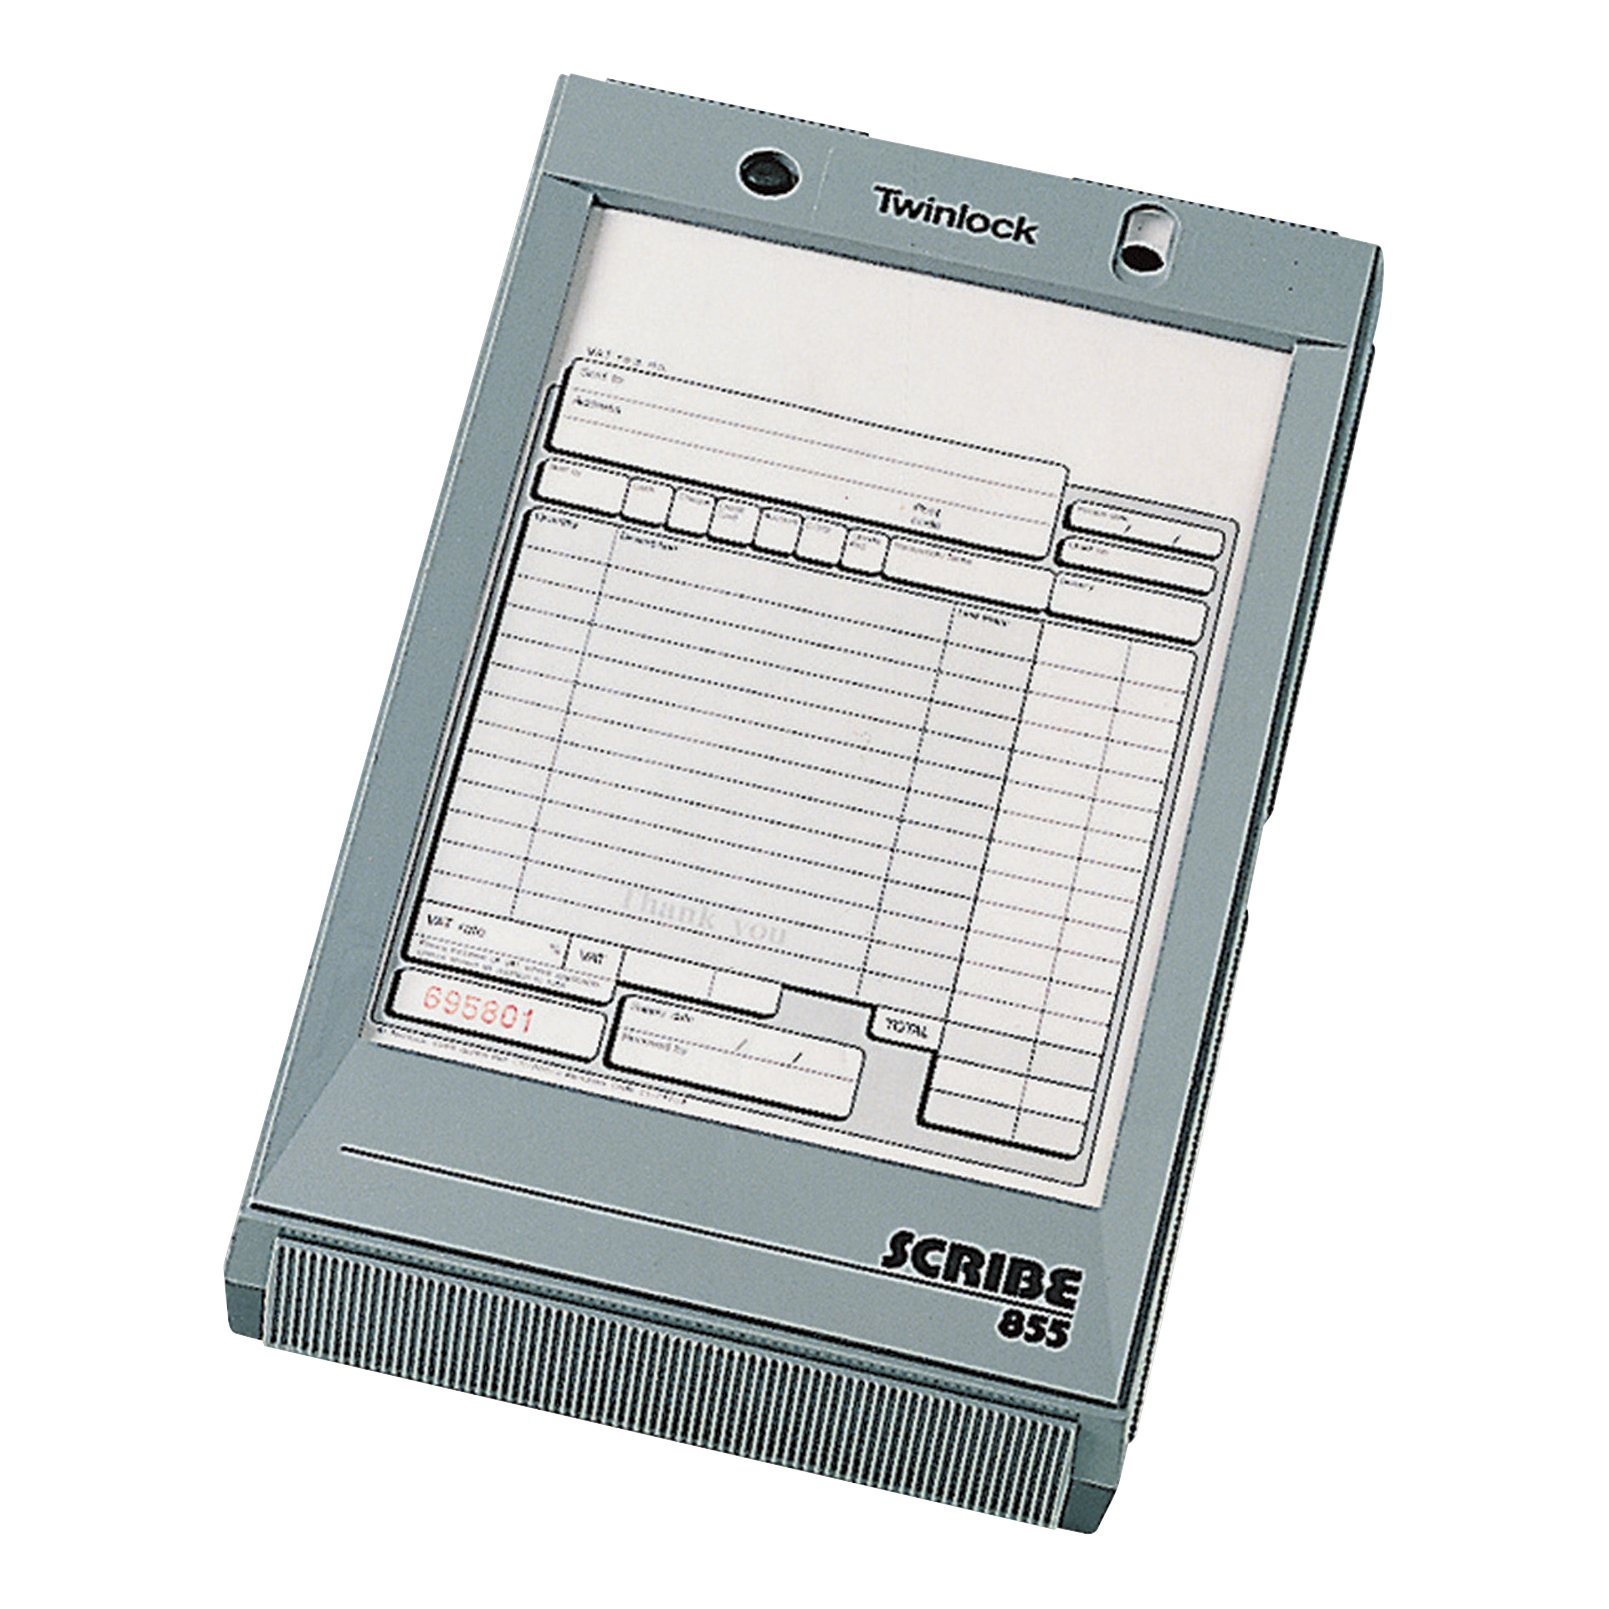 Twinlock Scribe 855 Scribe Register 264x161x49mm for Business Forms Ref 71011